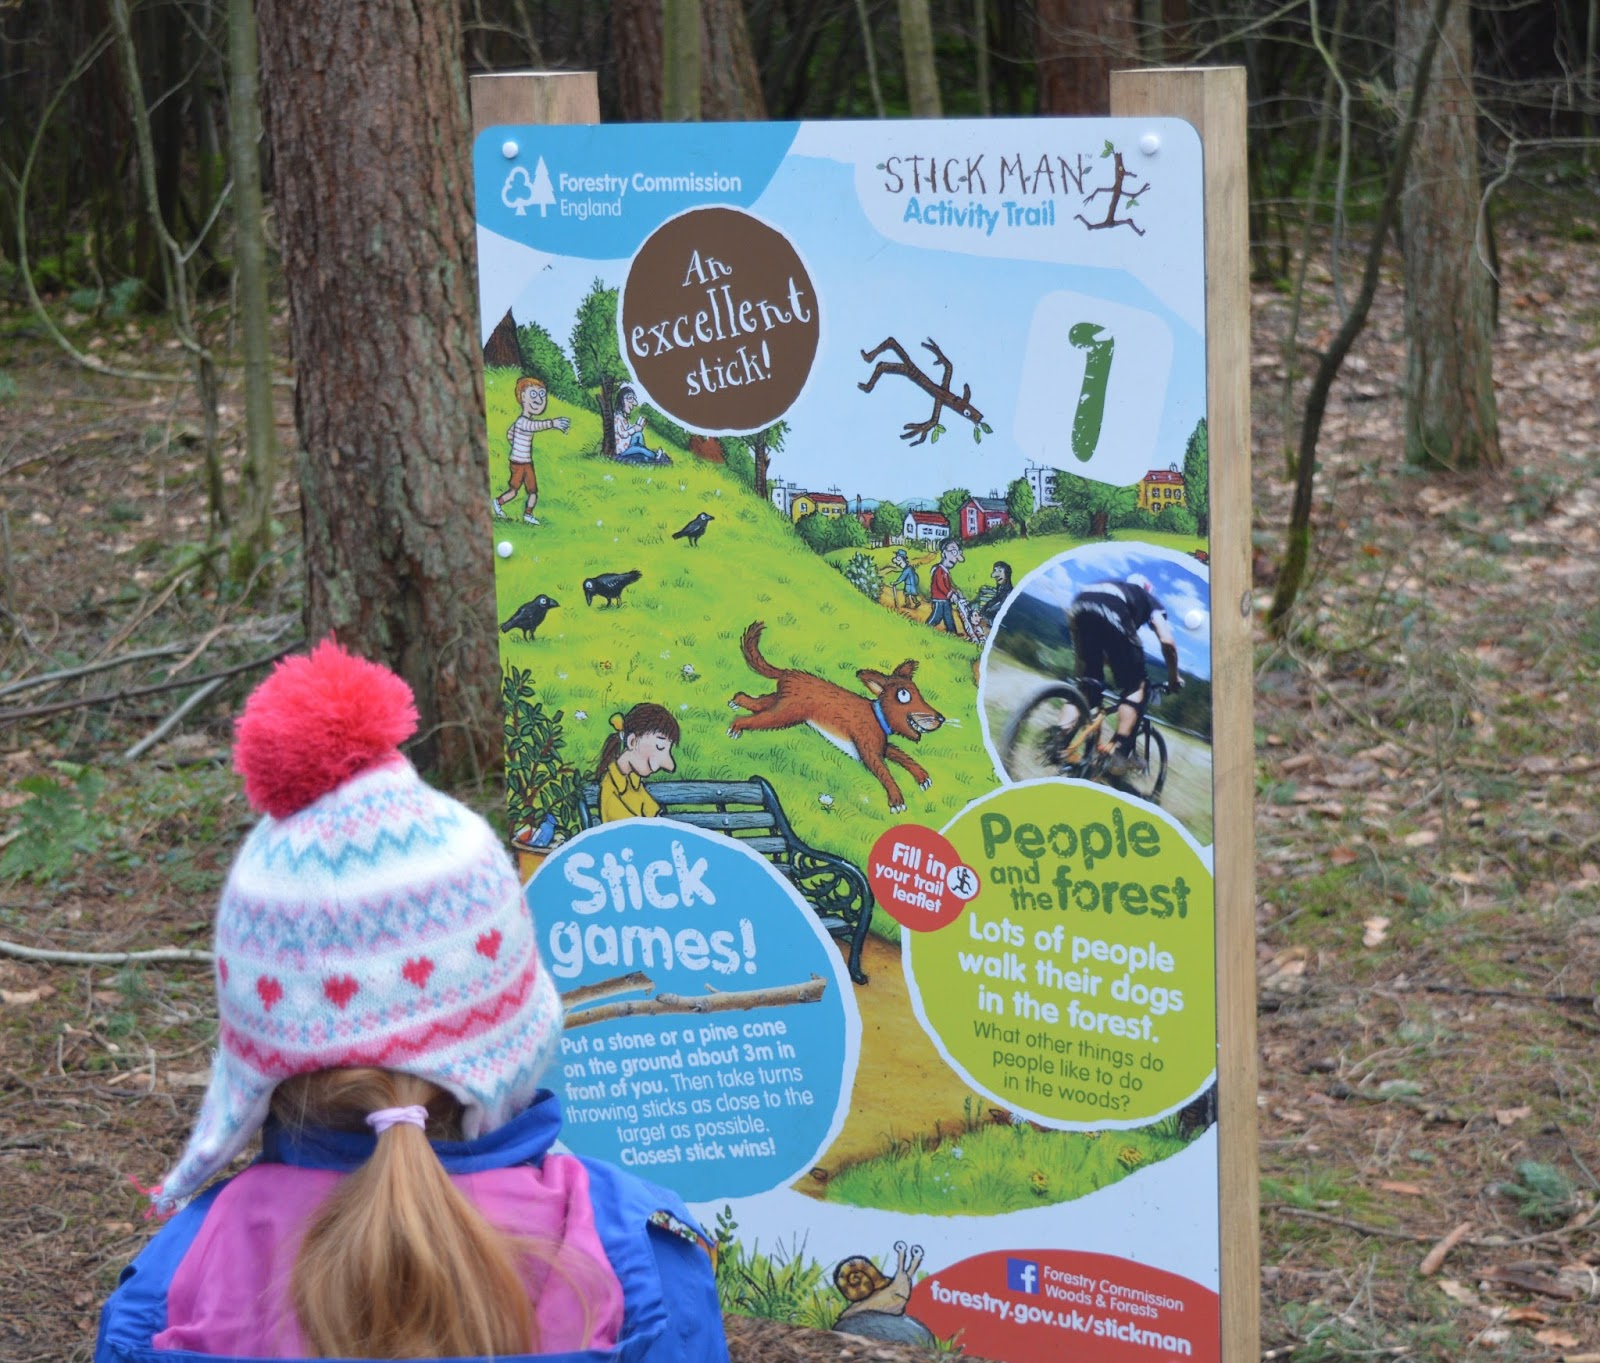 Stick Man Trail at Hamsterley Forest in Durham